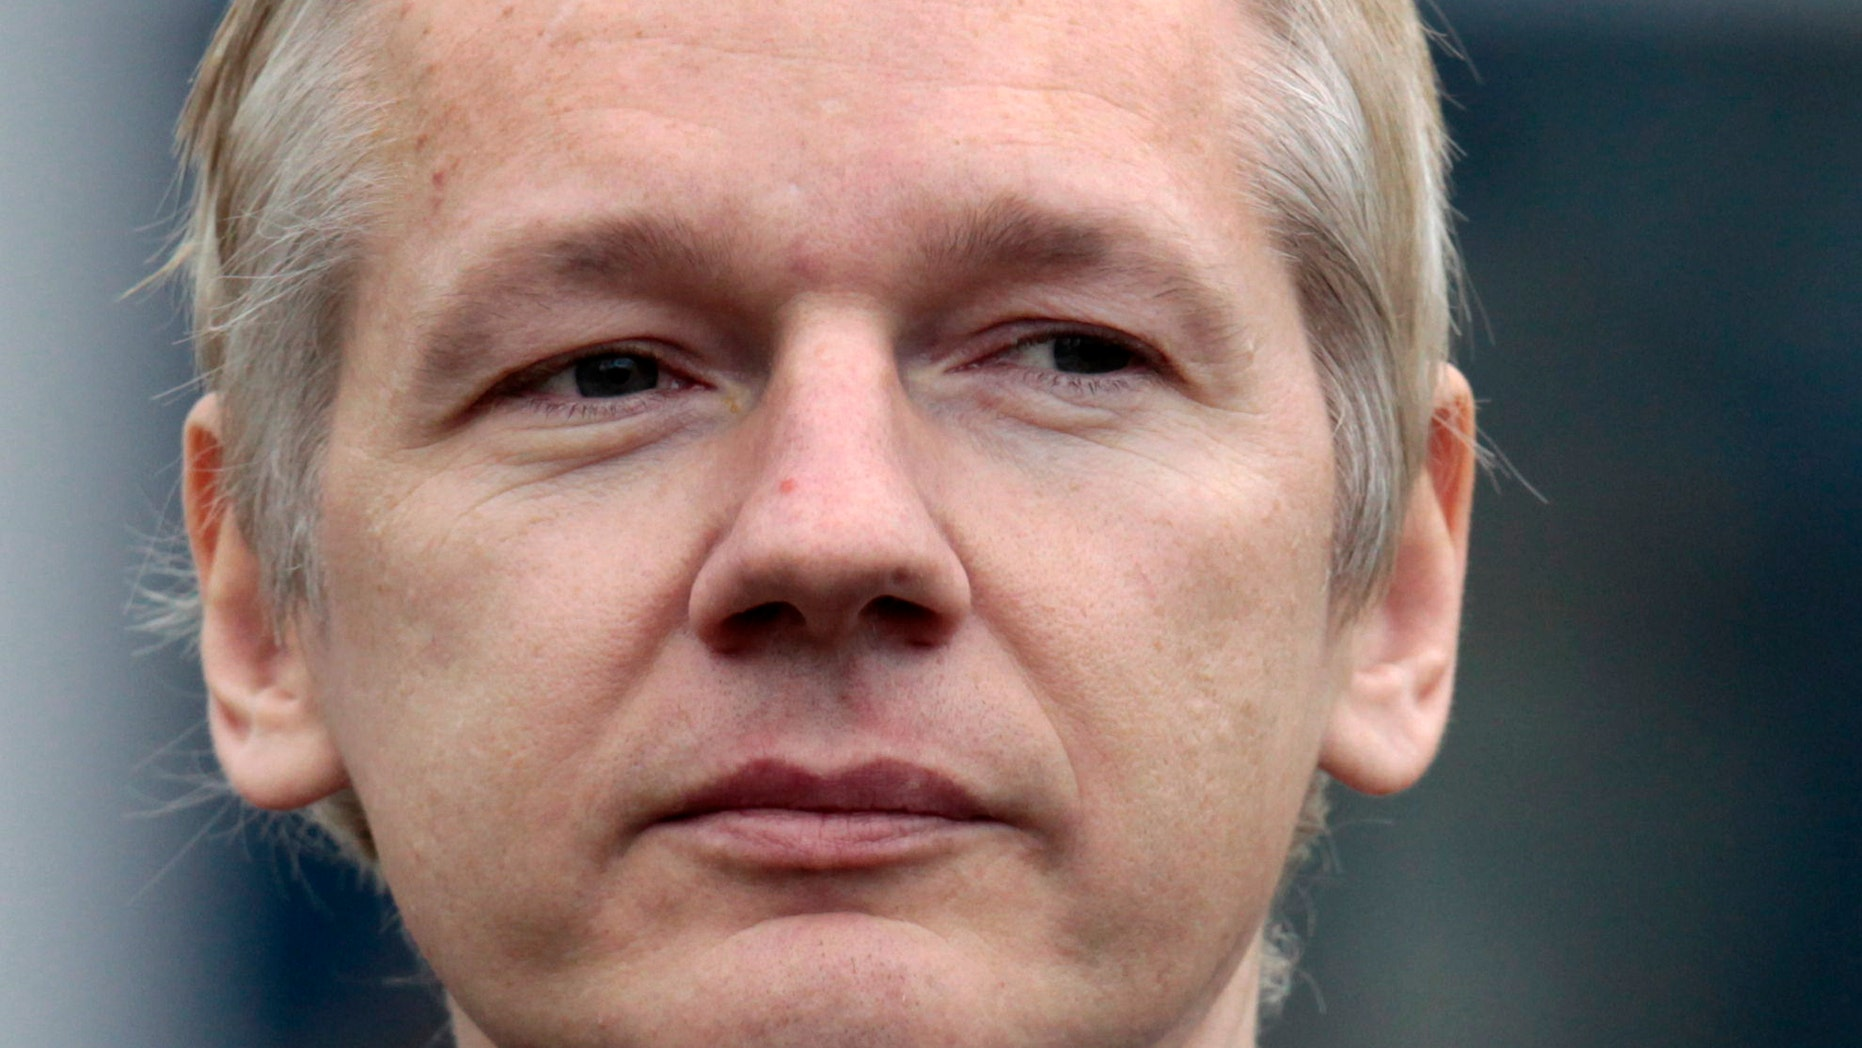 In this Jan. 11 file photo, the founder of WikiLeaks Julian Assange faces the media after making an appearance at Belmarsh Magistrates' Court in London. The New York Times is reporting that cables obtained by WikiLeaks reveal how the United States changed the way it dealt with Egypt after President Barack Obama came to power.